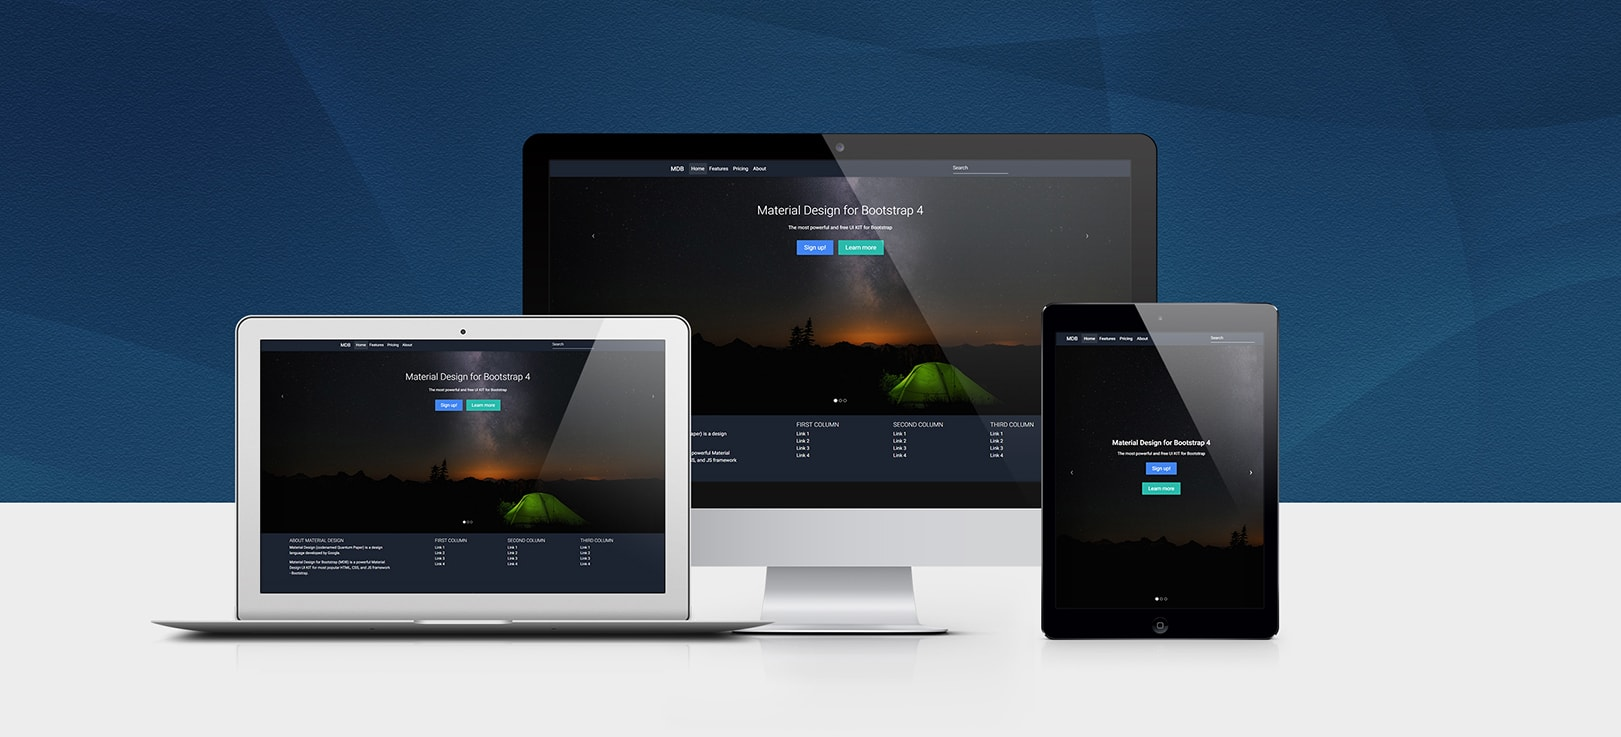 Full Page Image Carousel Template displayed on different devices